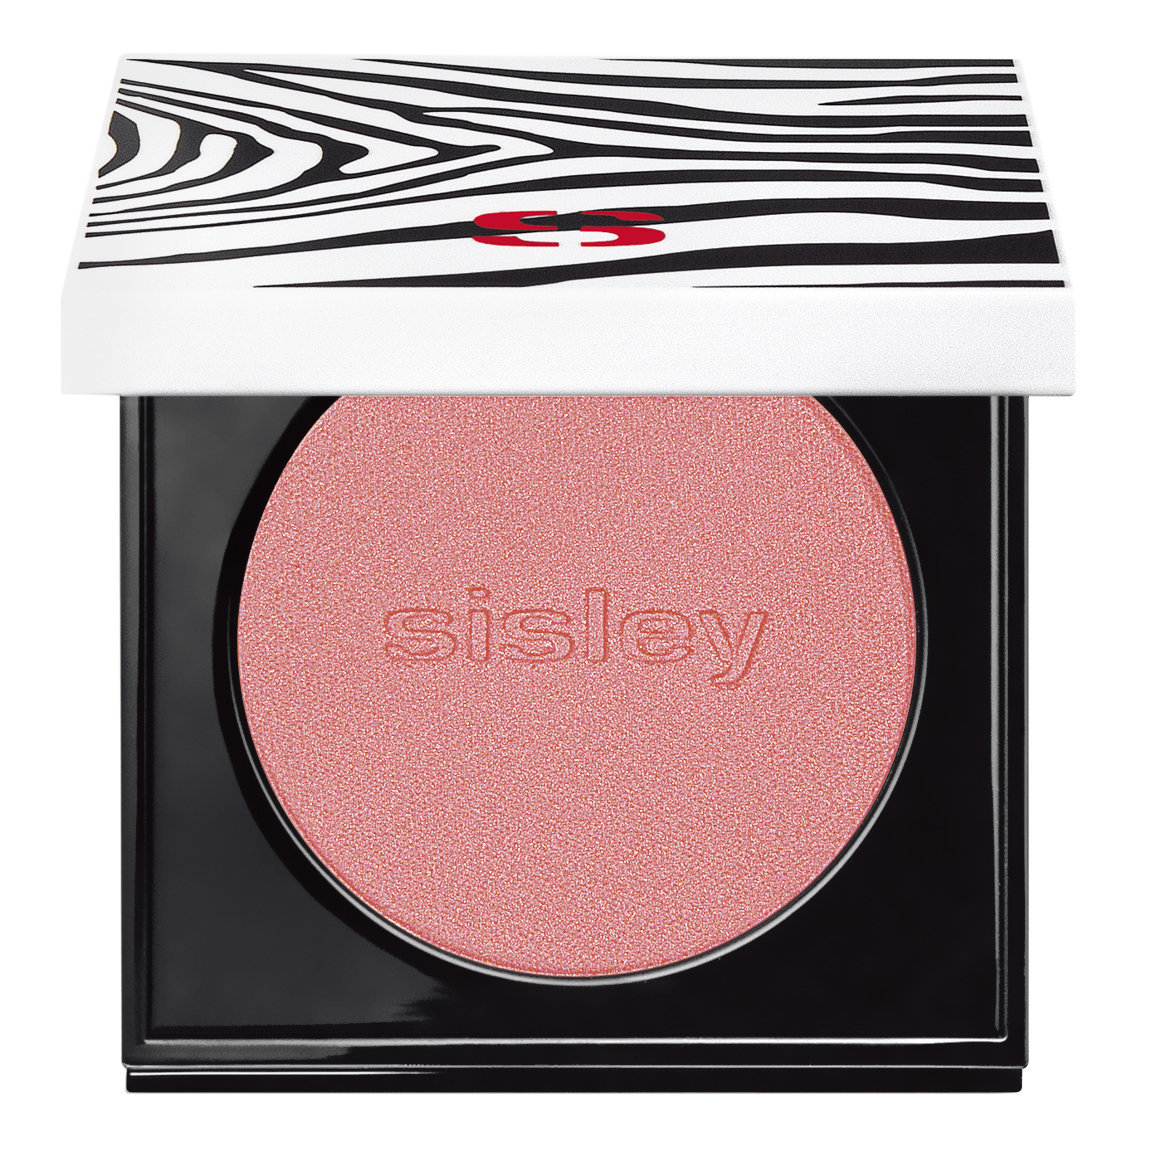 Sisley-Paris Le Phyto-Blush 1 Pink Peony alternative view 1 - product swatch.